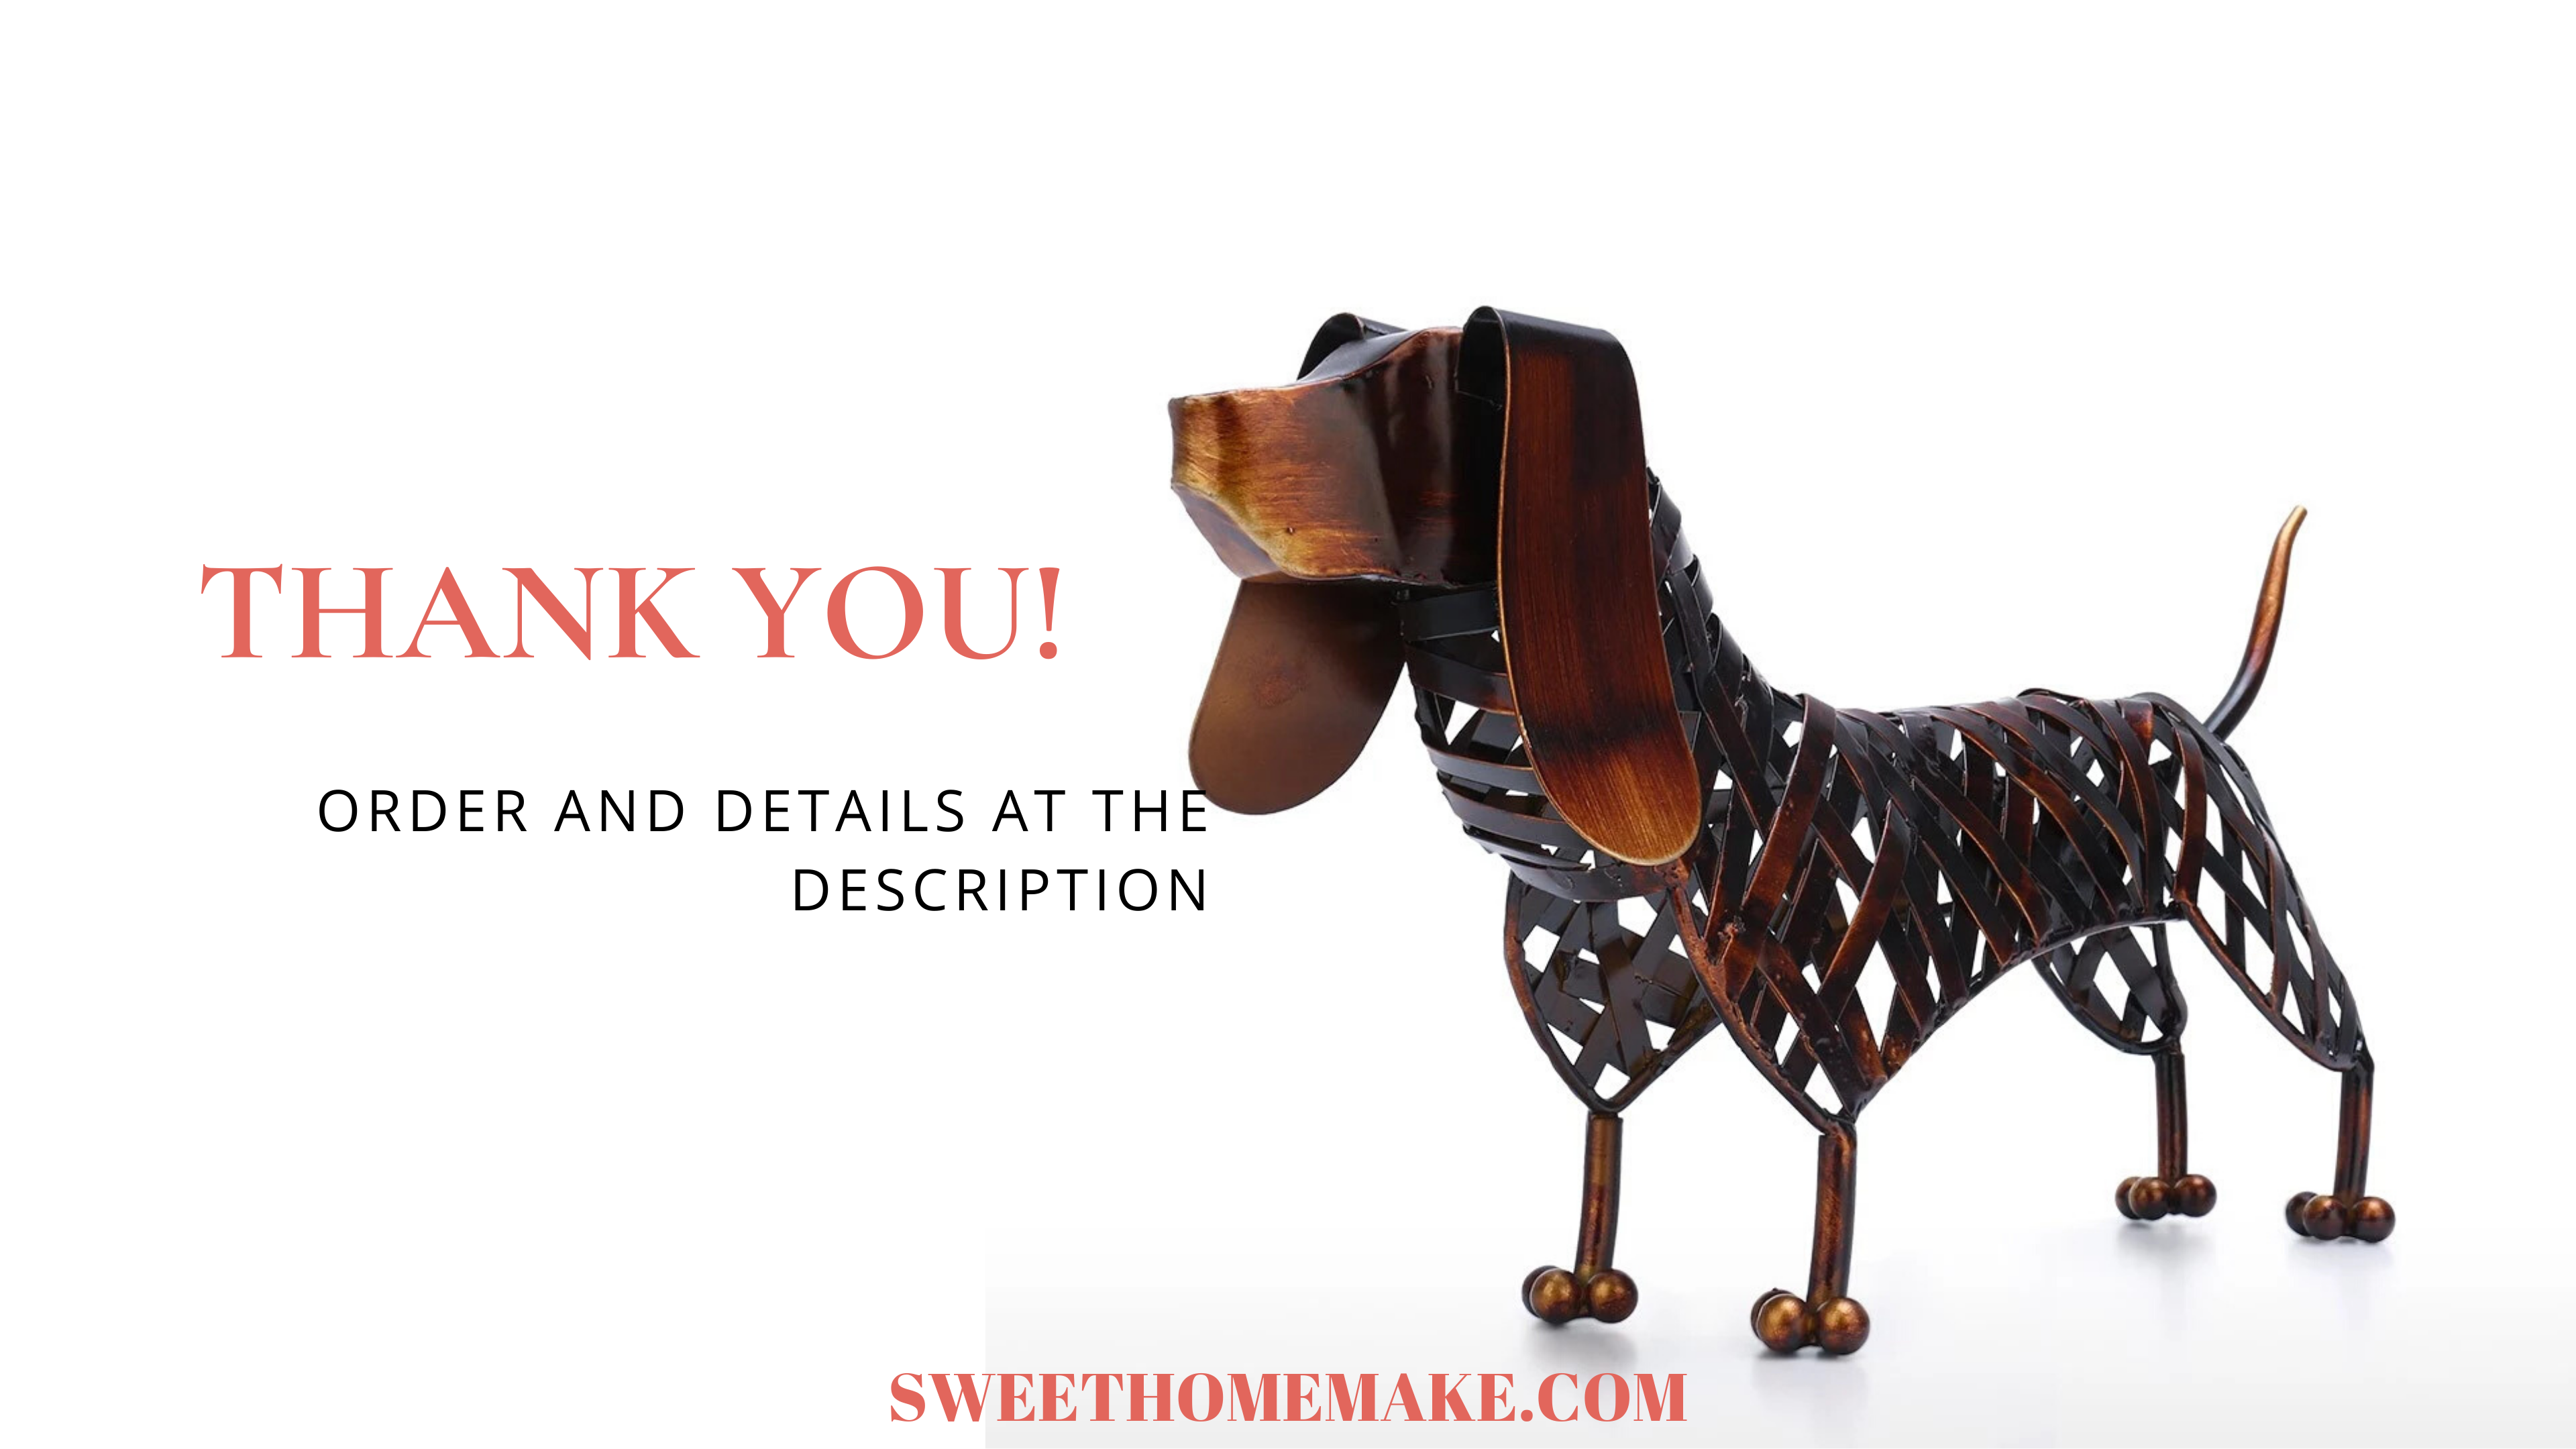 Dachshund Dog Statue: Purity of Emotional Intensity as Dachshund Gifts and Dachshund Decor